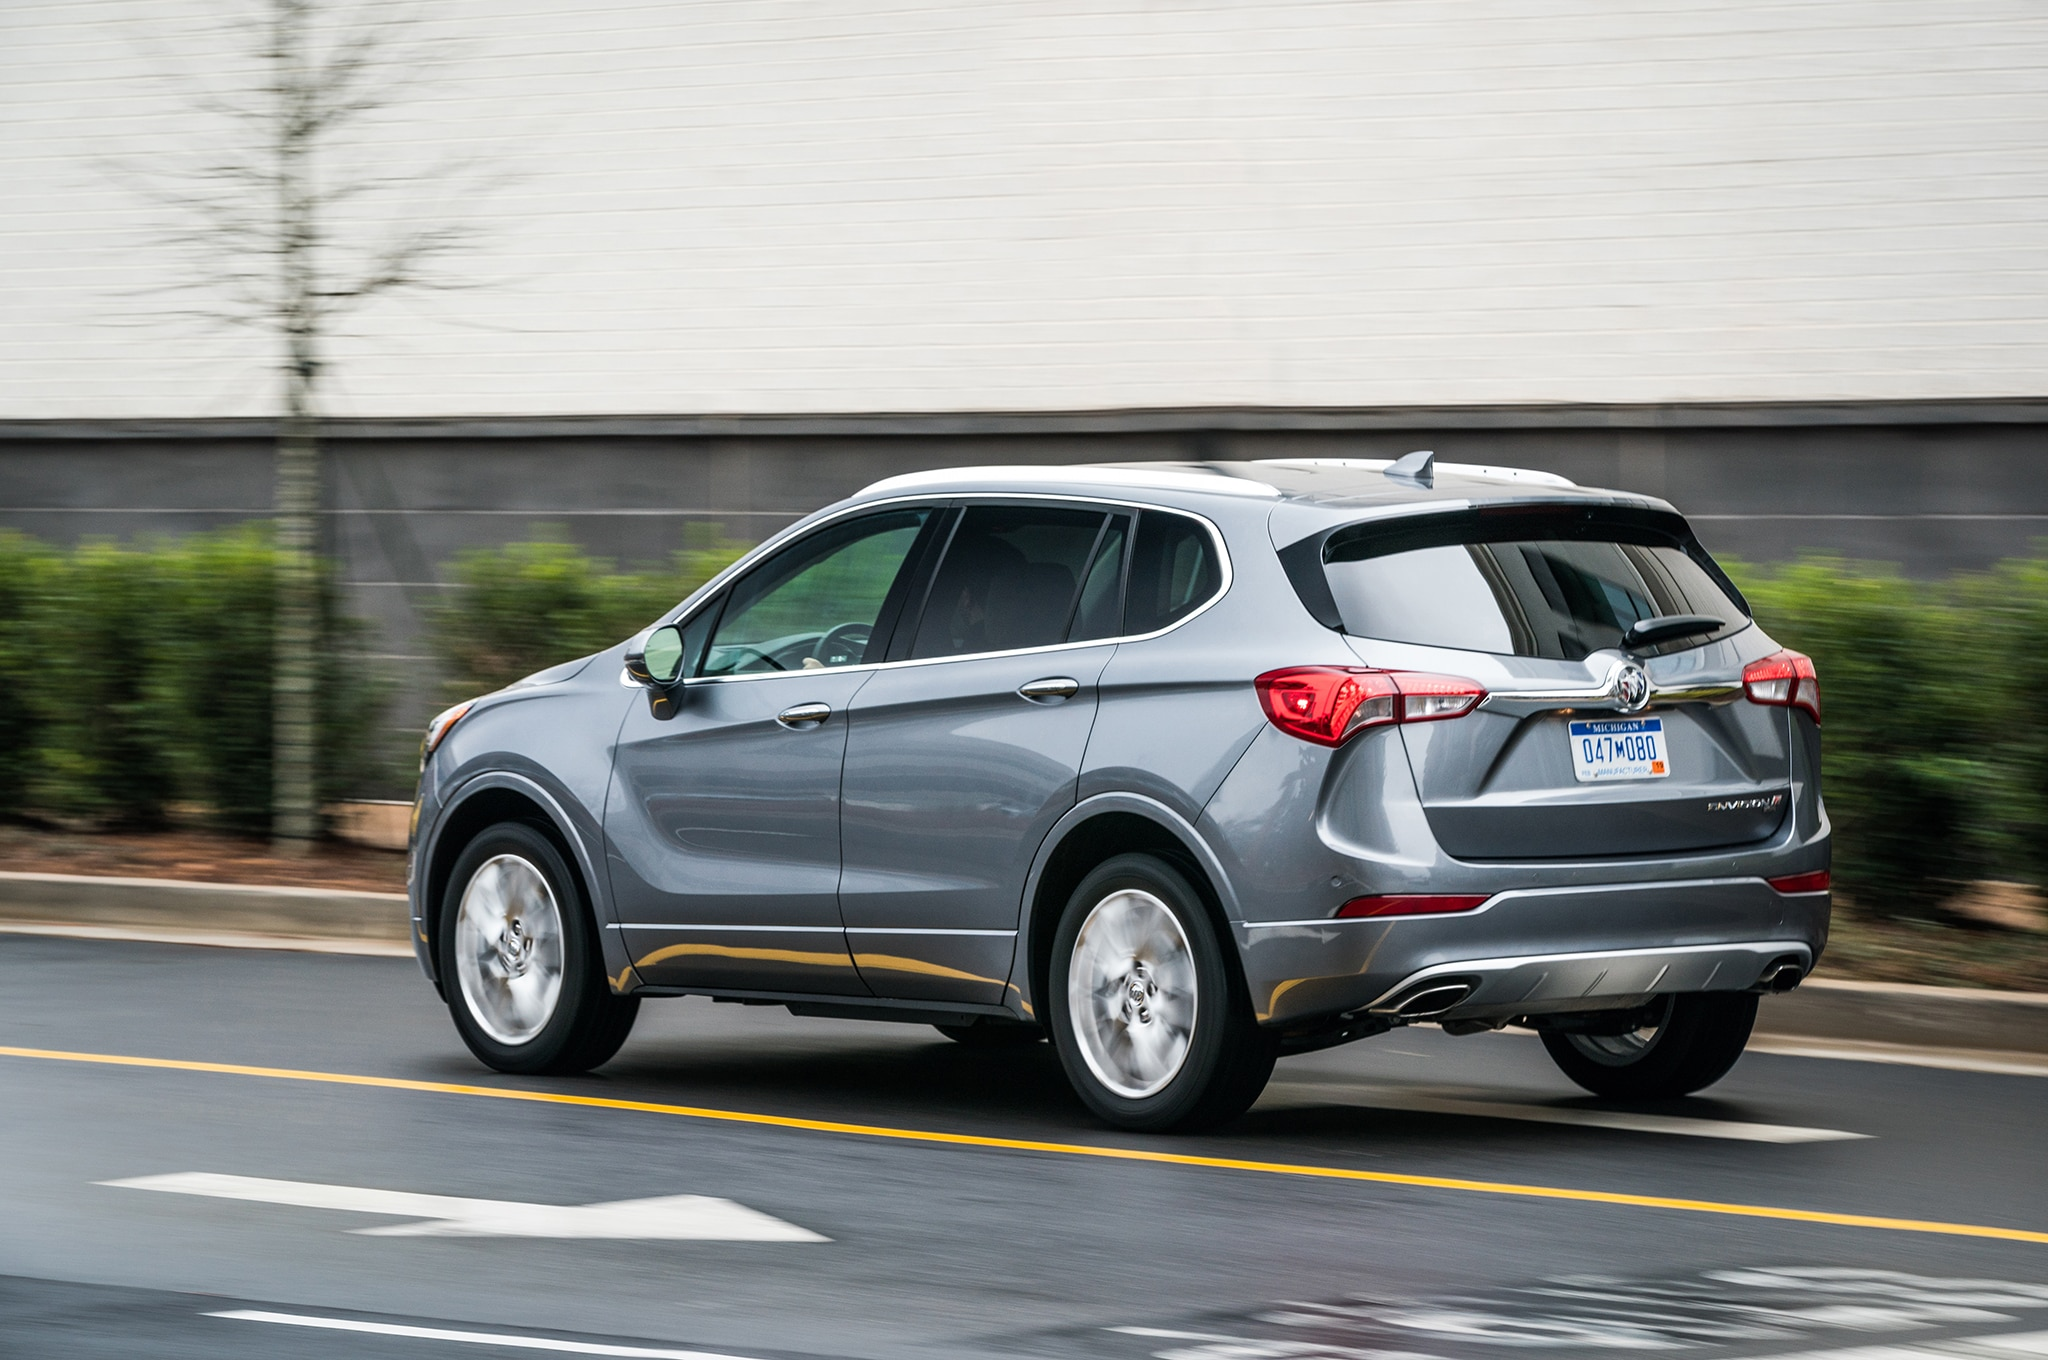 Pictures Of The First Automobile >> First Drive: 2019 Buick Envision Premium II | Automobile Magazine